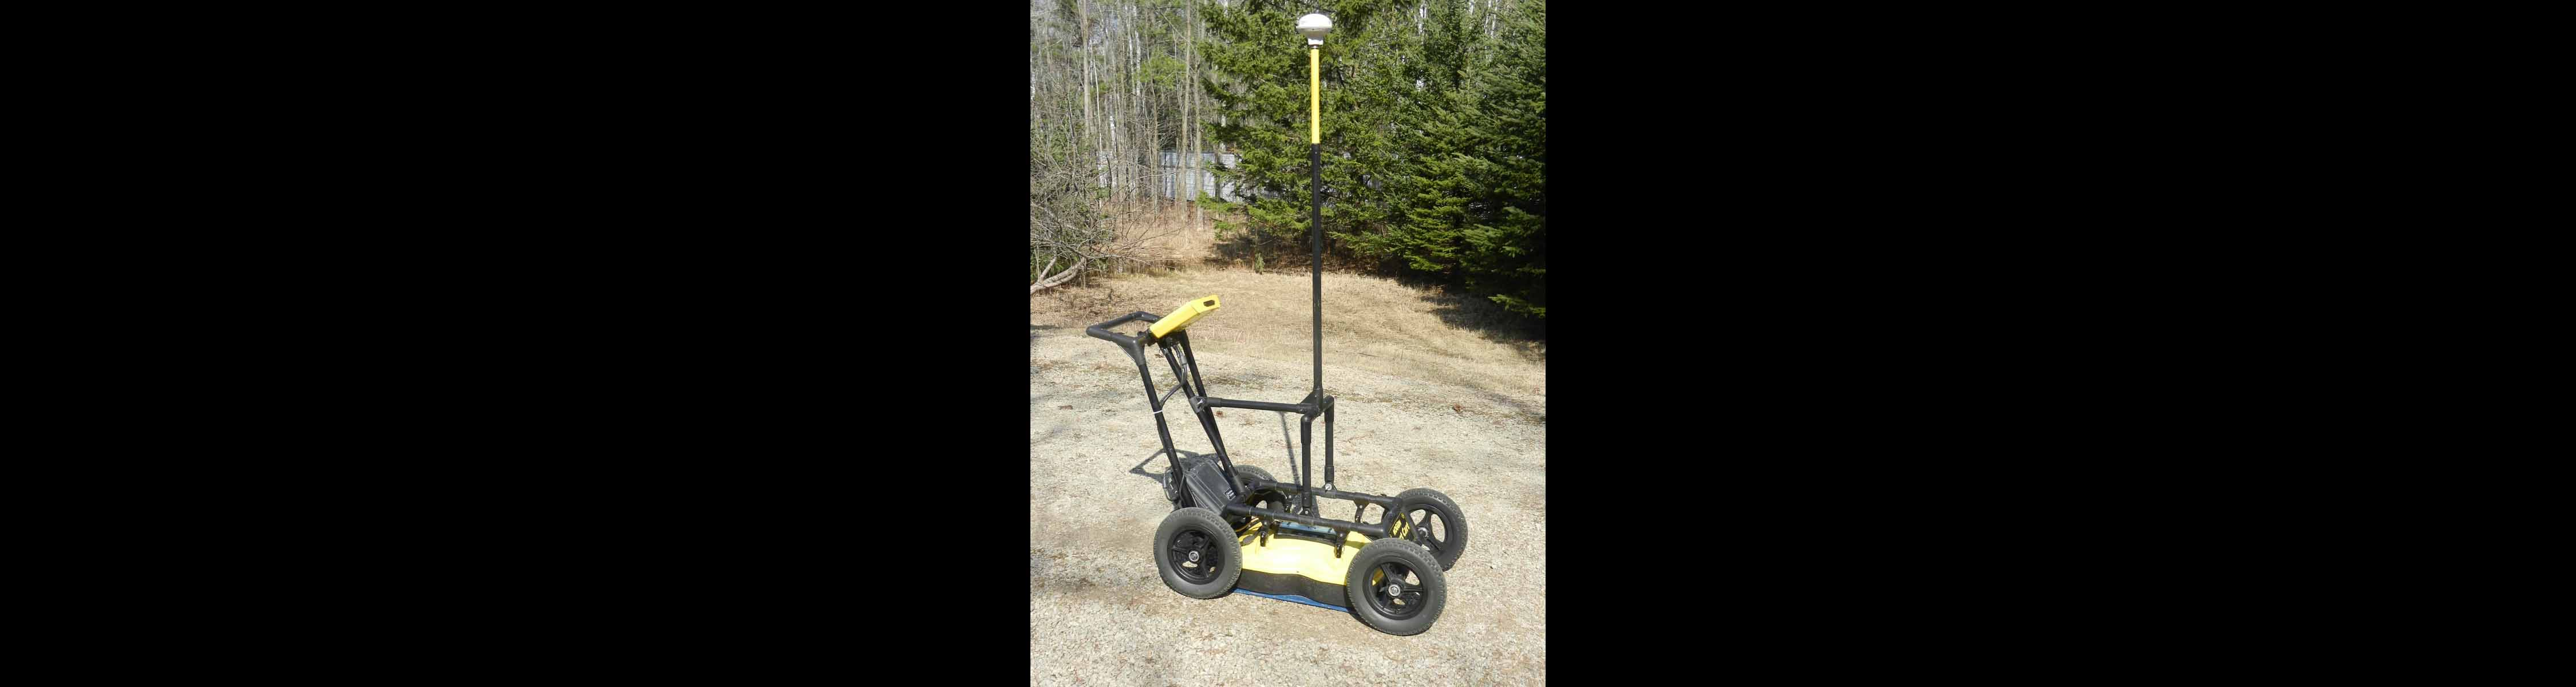 DGPS Receiver With a Ground Penetrating Radar